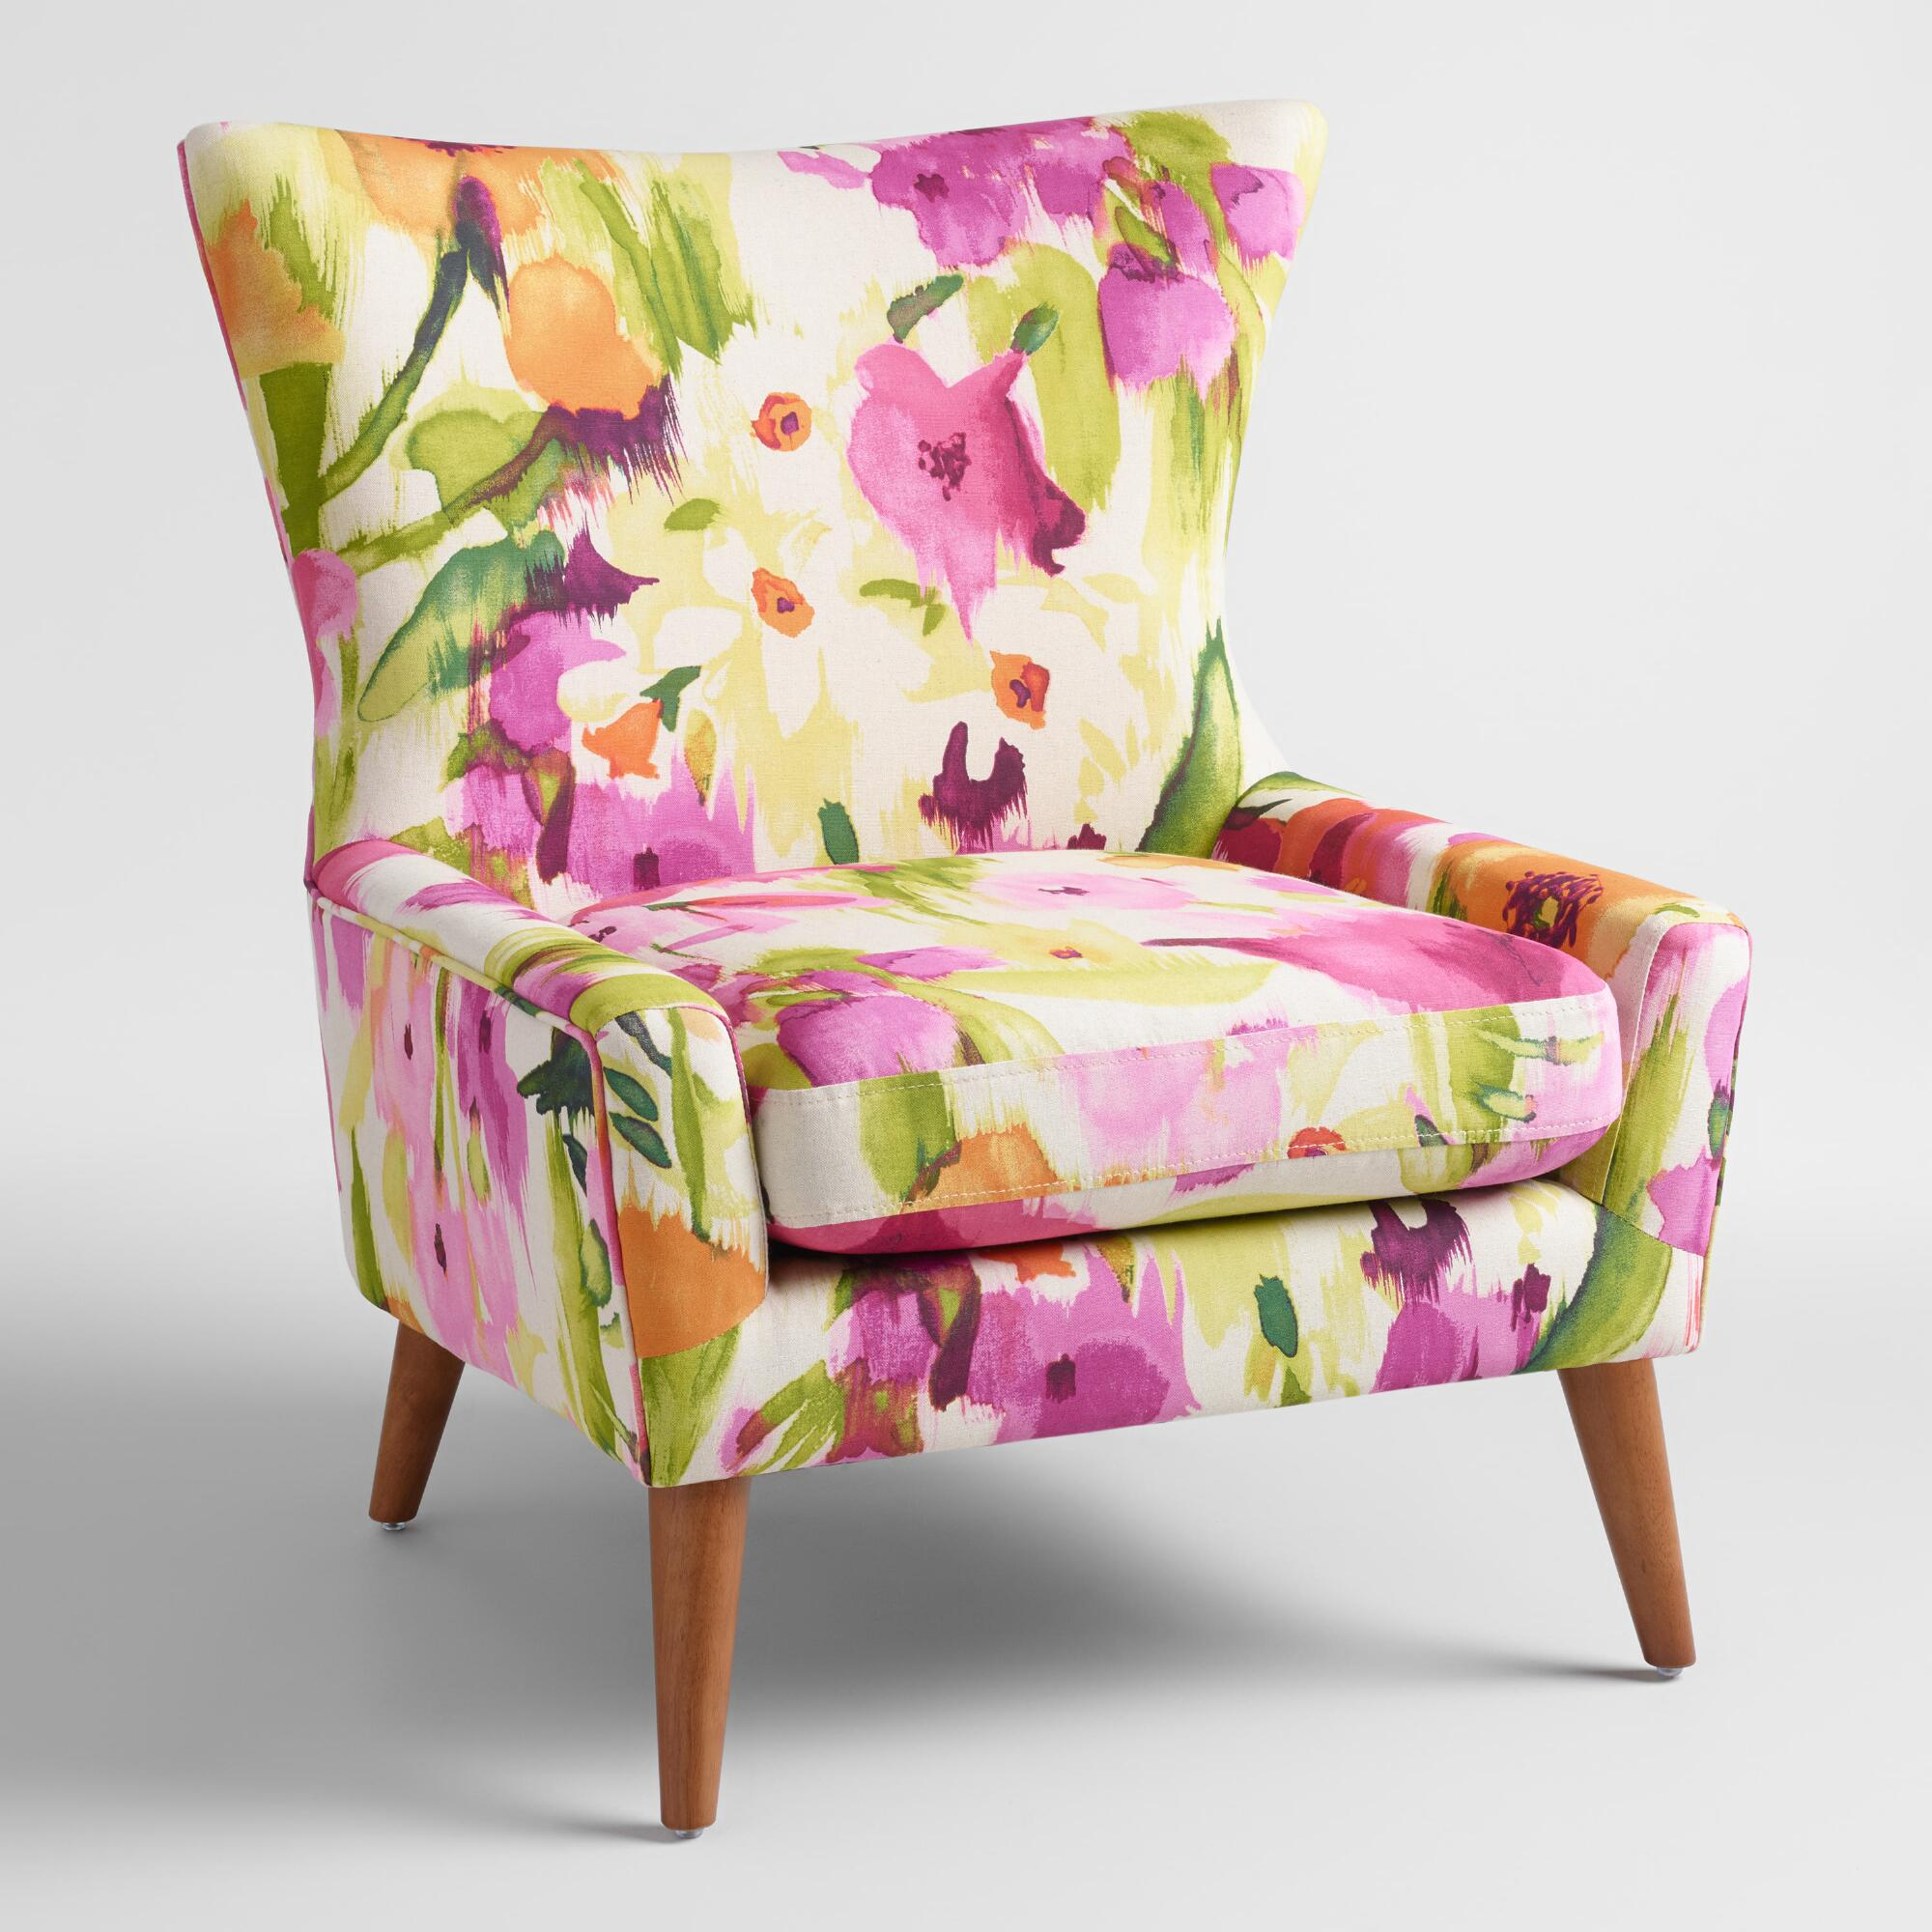 Colourful accent chairs - Watercolor Floral Ariana Accent Chair